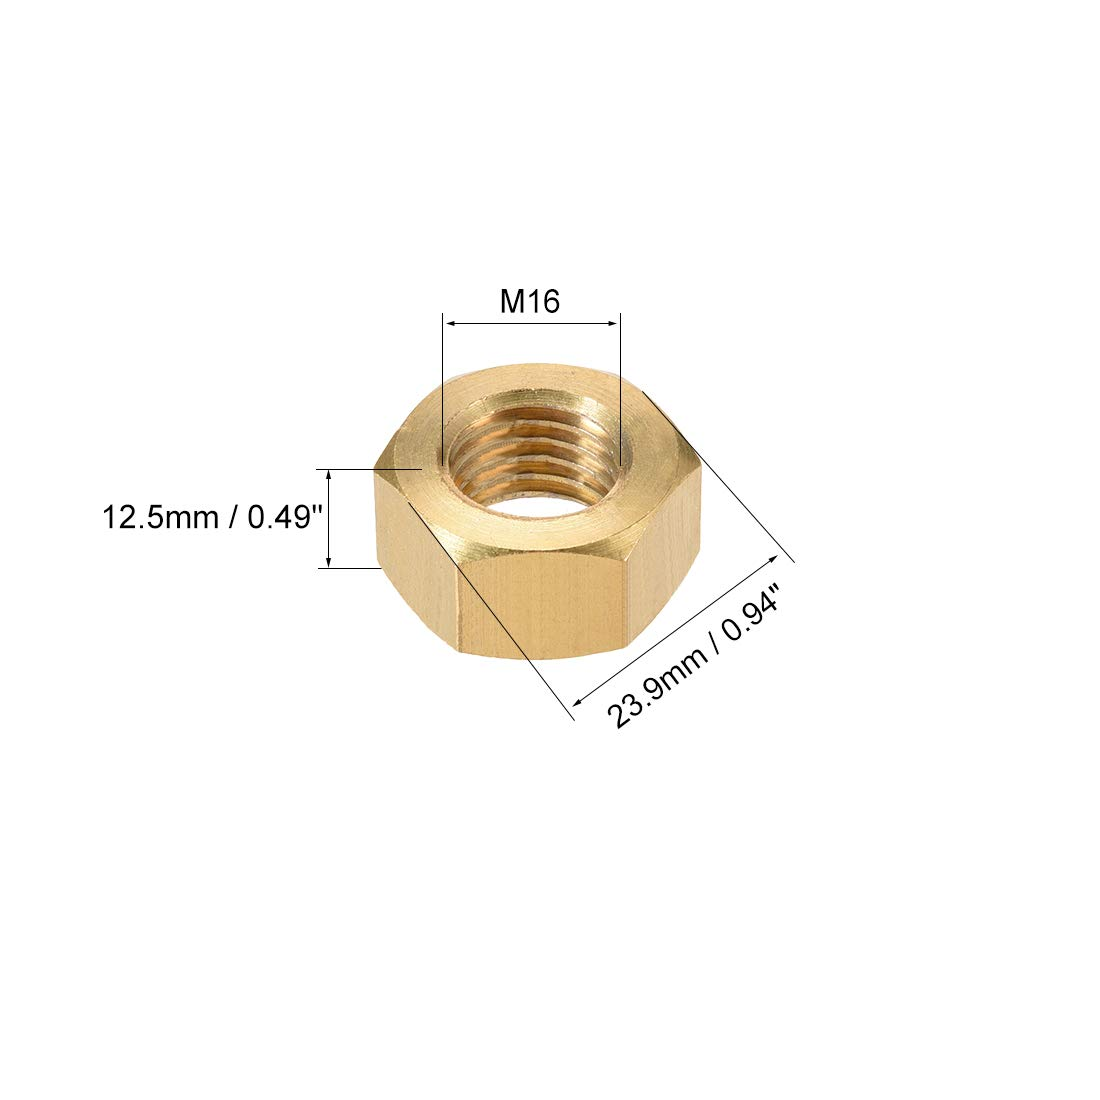 uxcell Hex Nuts Brass M8x1.25mm Metric Coarse Thread Hexagon Nut Pack of 10